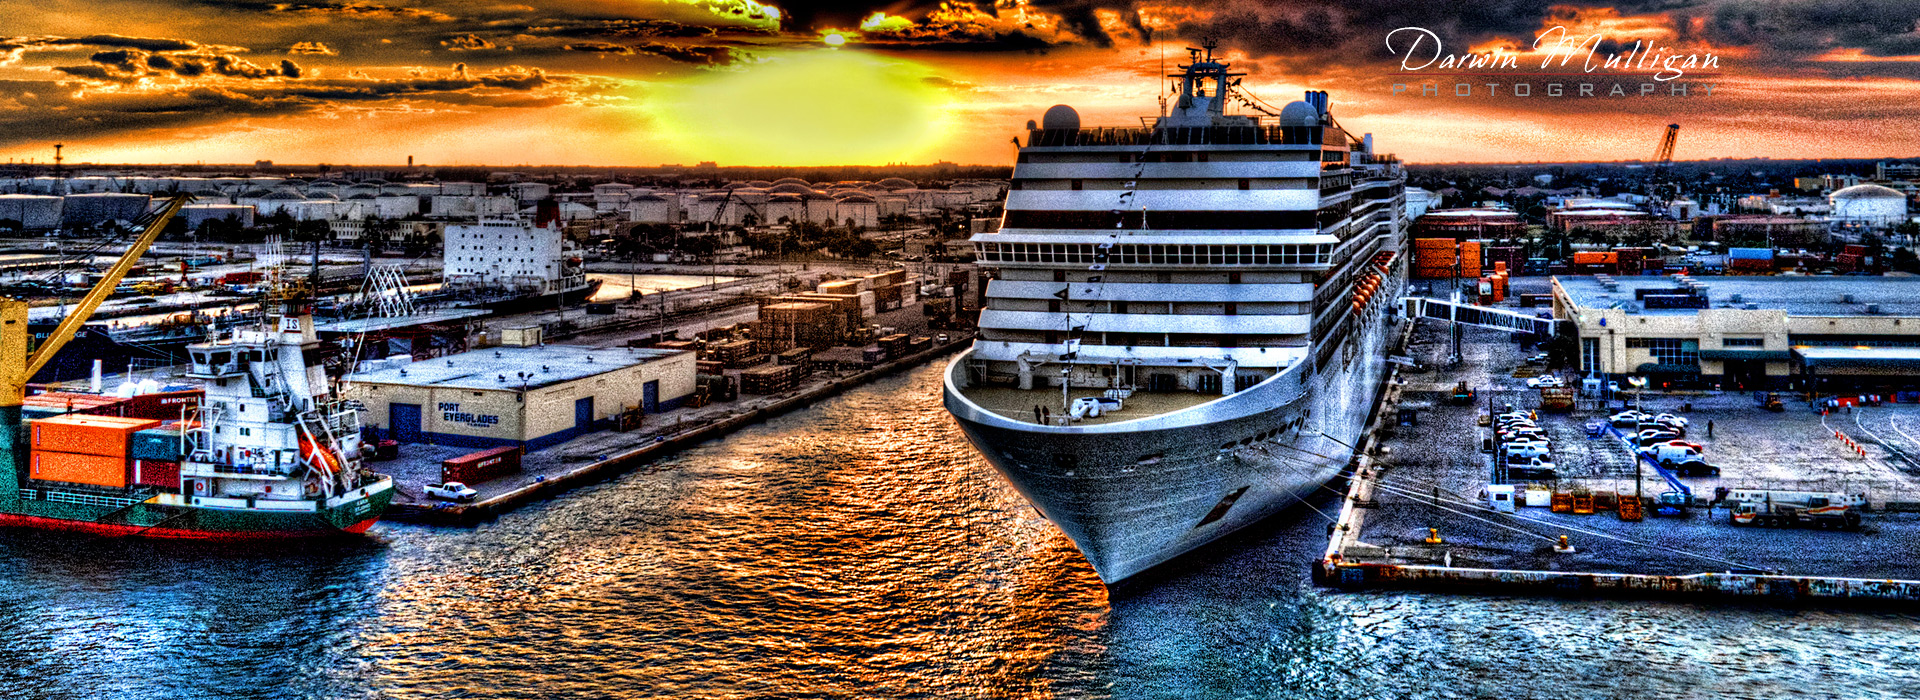 Panorama-Ft-Lauderdale-Florida-Cruise-Ship